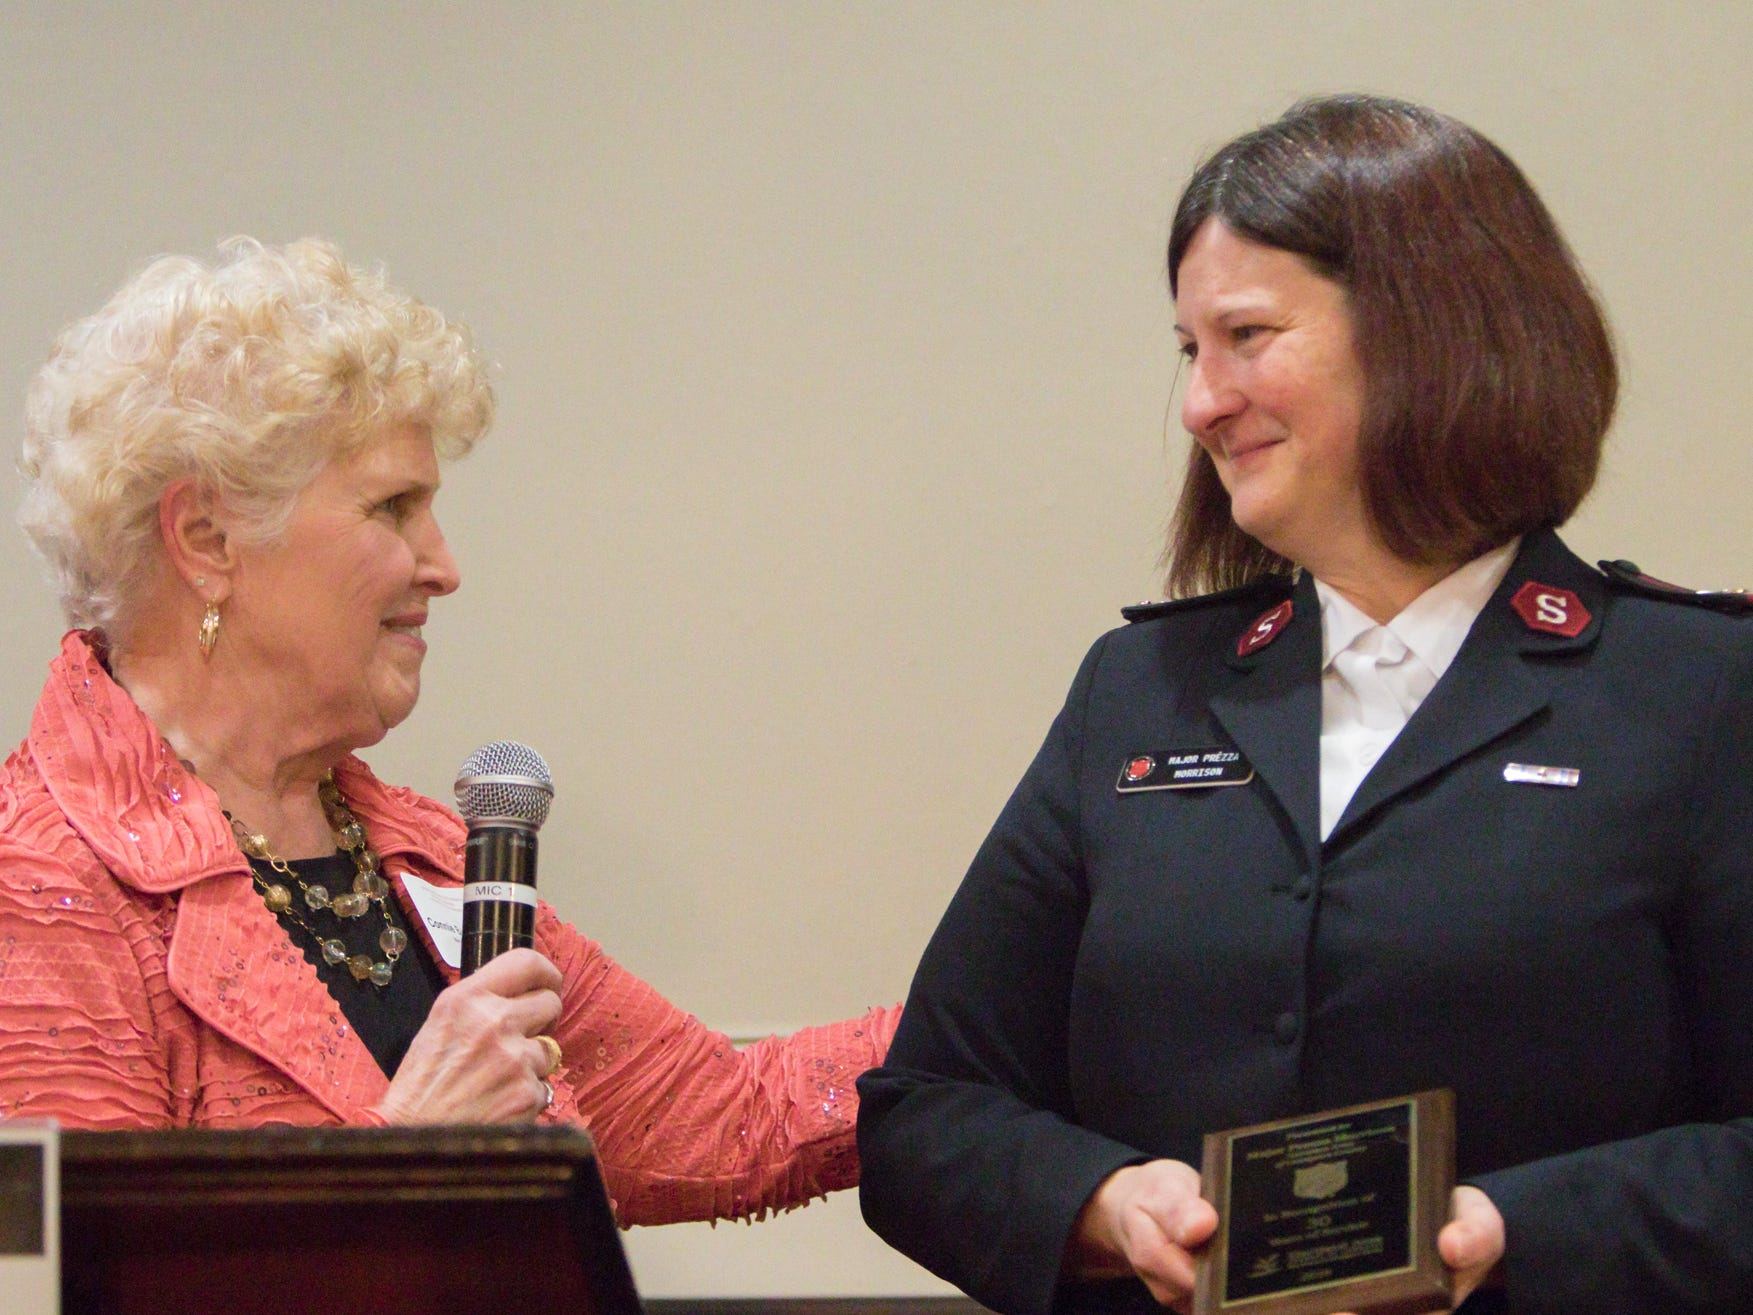 Hartland Chamber past president Connie Brinkerhoff congratulates Maj. Prezza Morrison of the Salvation Army for 30 years of service to the community at the chamber's awards dinner Thursday, Jan. 31, 2019.